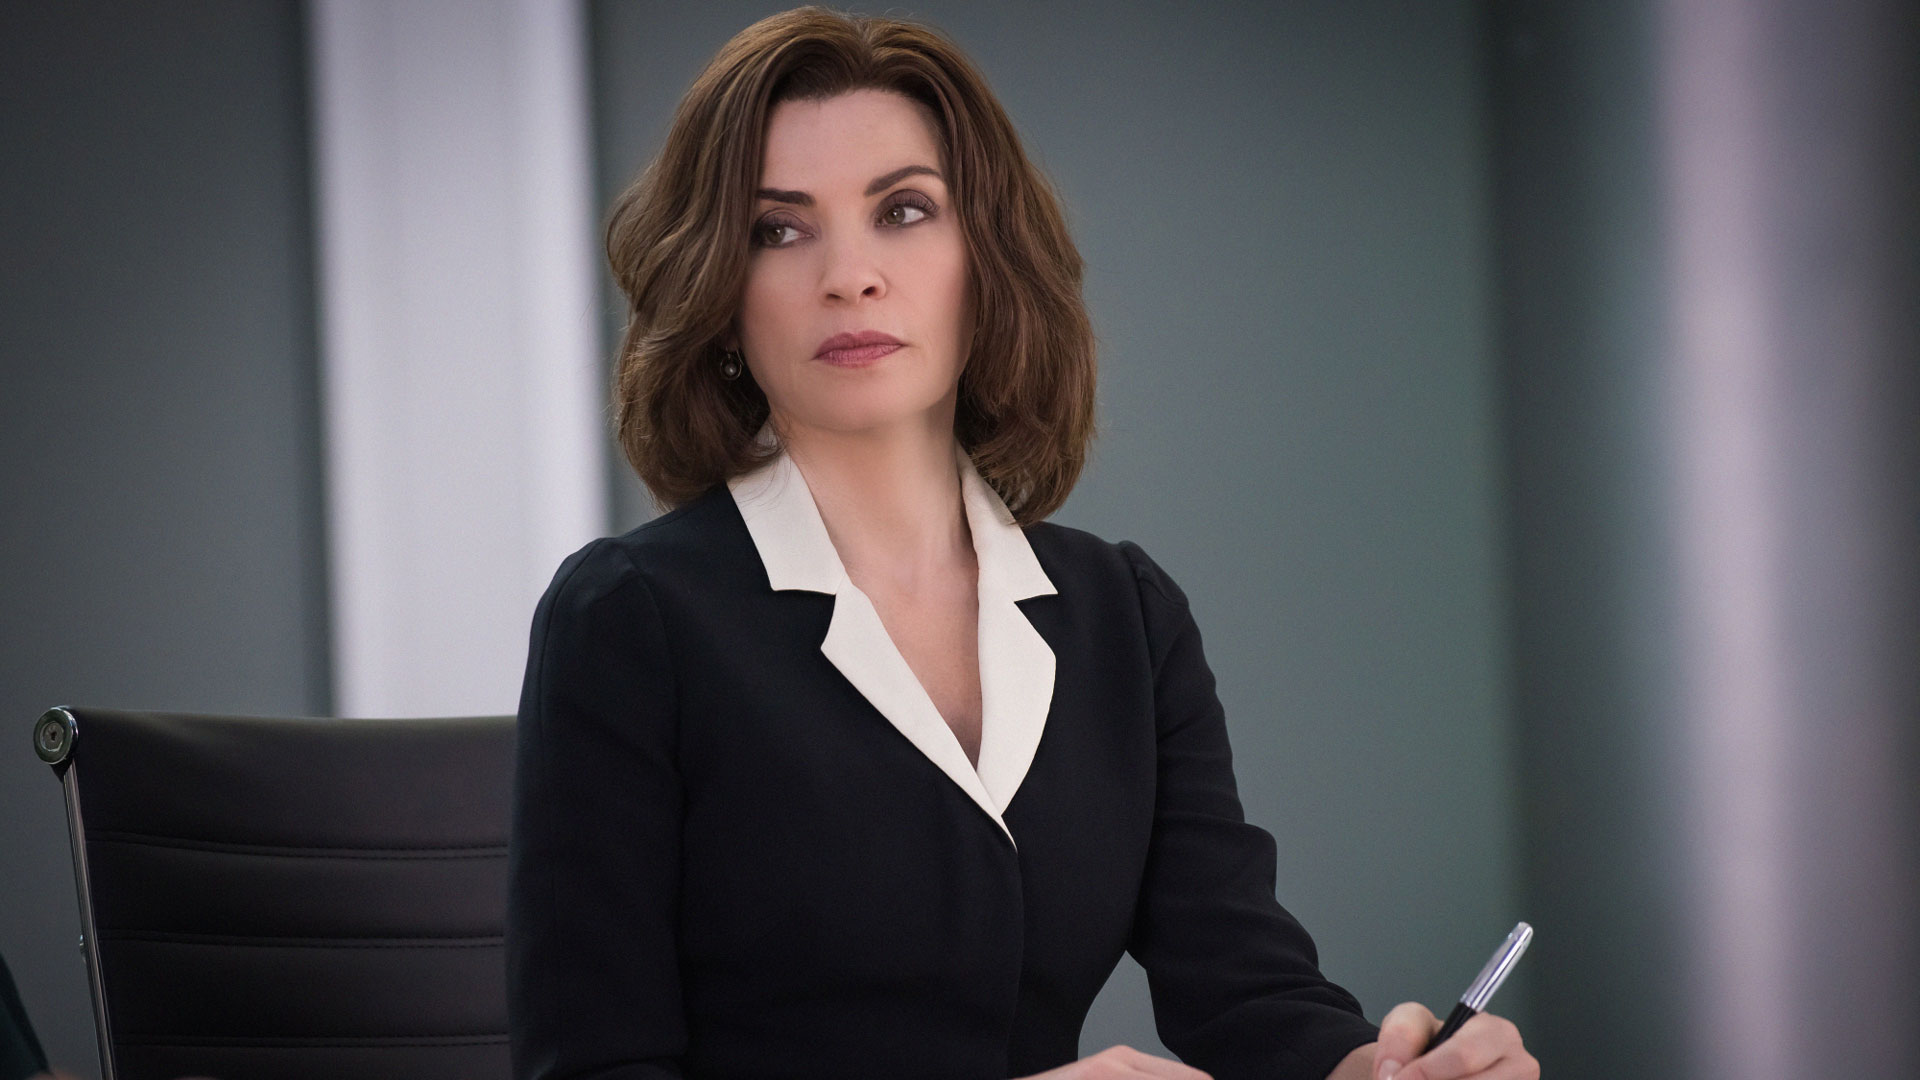 Alicia Florrick takes notes on the case.